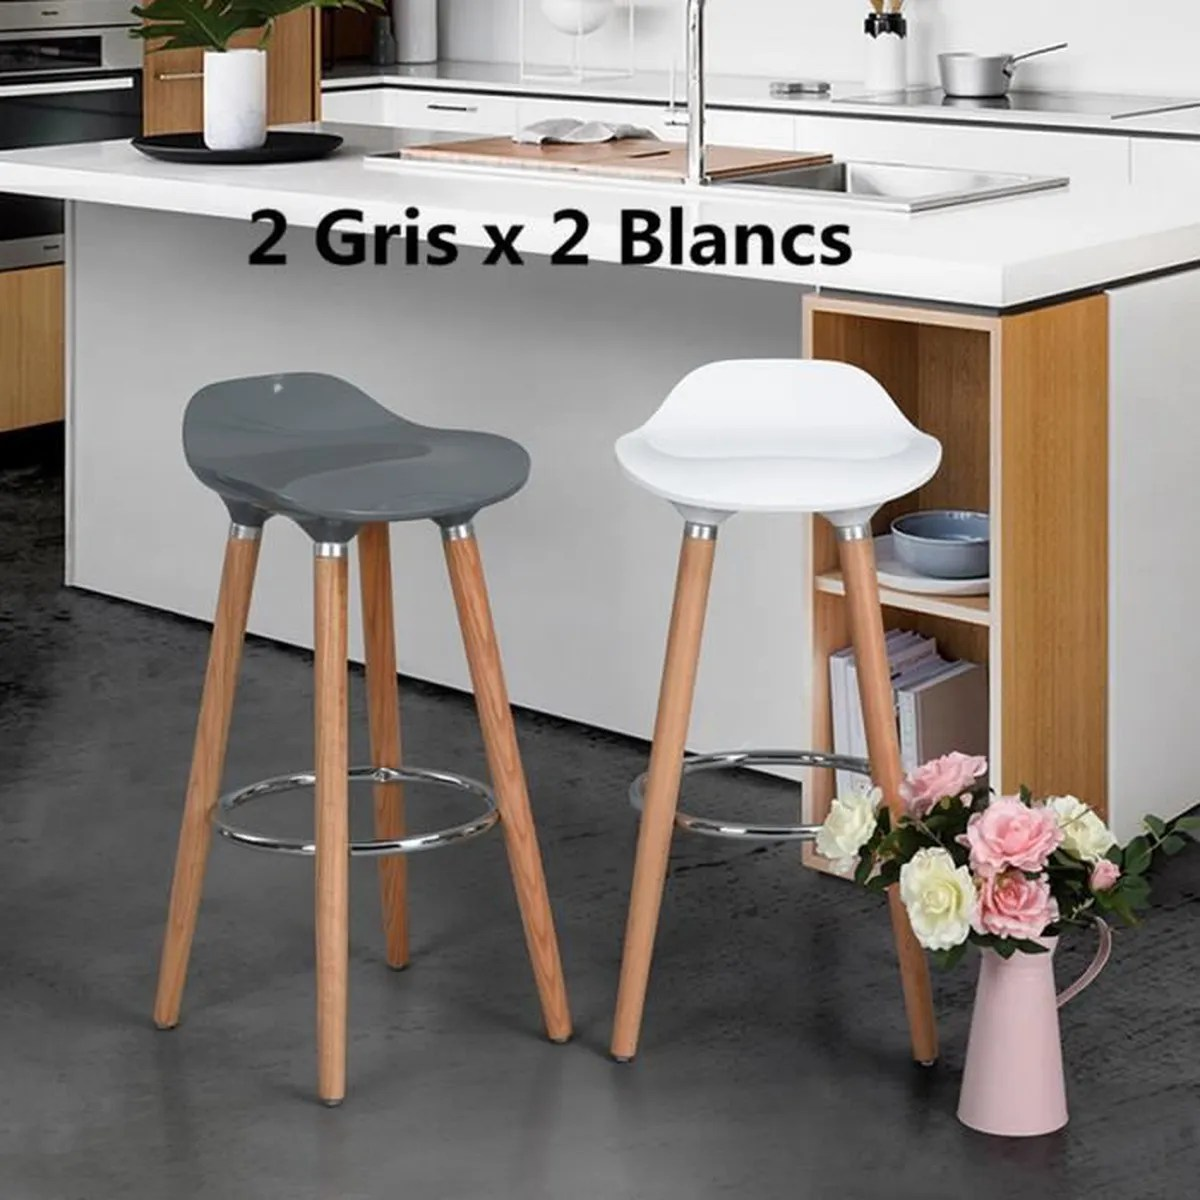 Songmics Lot De 2 Tabourets De Bar Stool Lot De 2 Tabourets De Bar Gris X 2 Tabourets De Bar Blancs